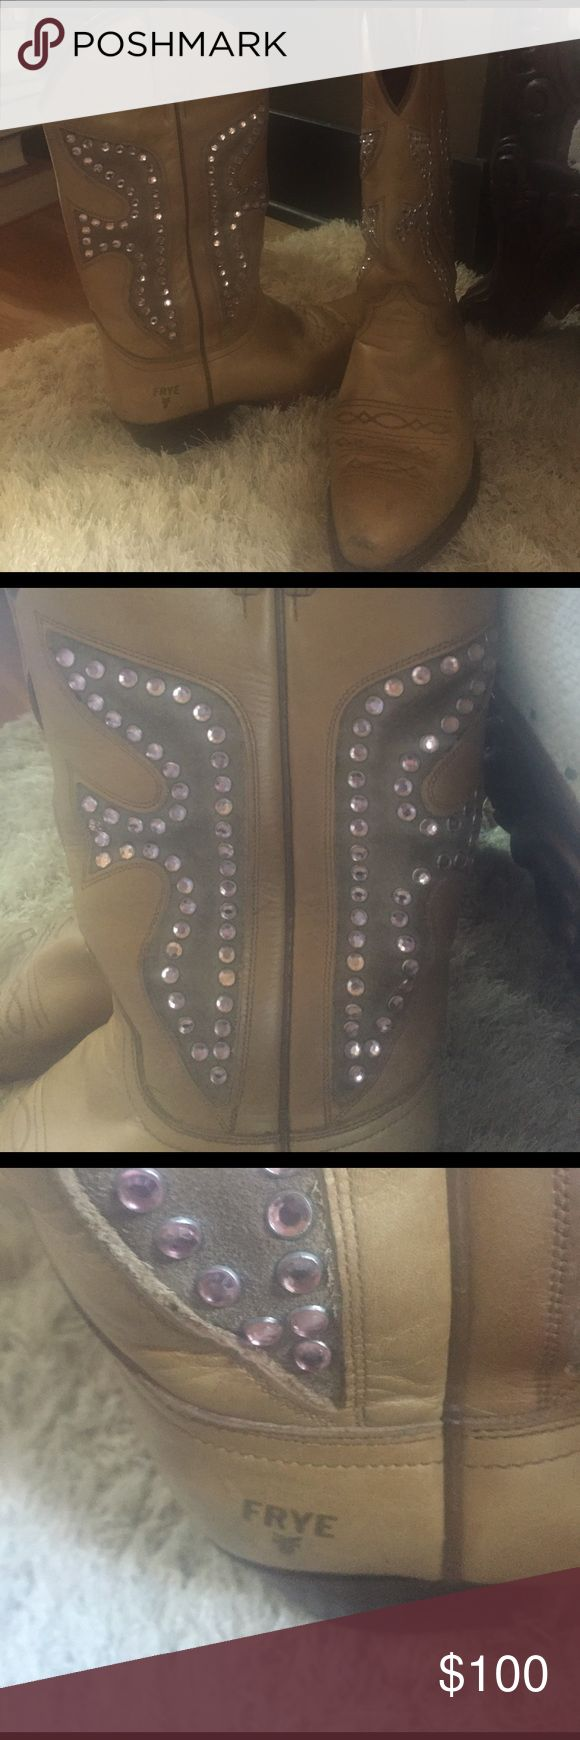 FRYE DAISY DUKE Golden Tan Western Style Boots Gorgeous tan/gold color with light pink stones. Both toes are a bit scuffed but still in excellent condition. Wore while pregnant now too big. Frye Shoes